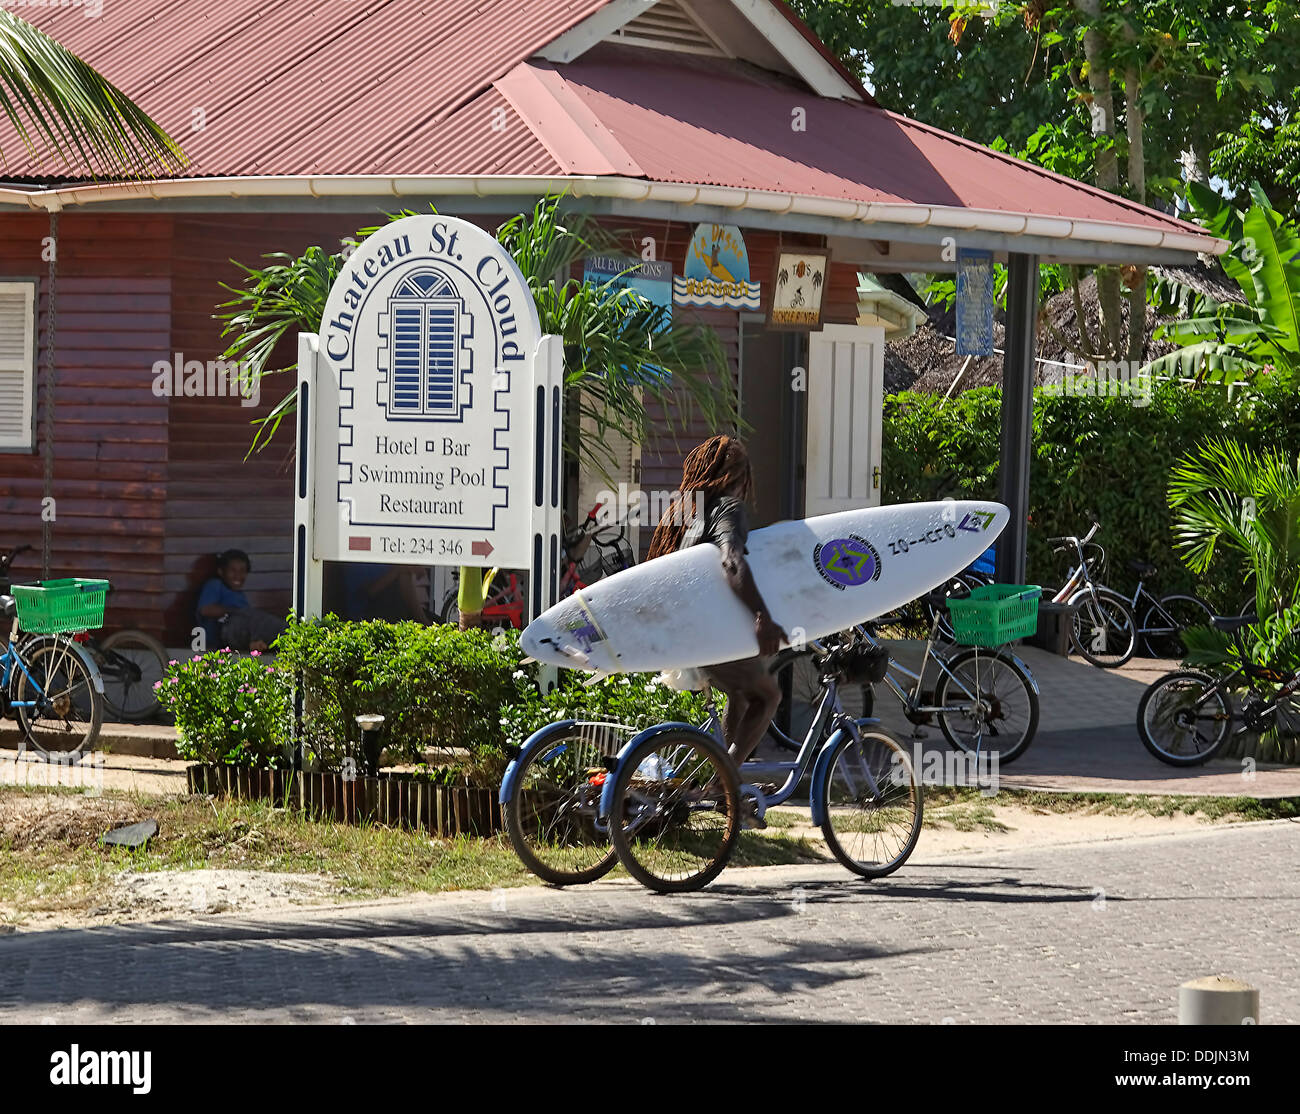 Chateu St. Claude Church, Surfer on bicycle, La Digue, Seychelles - Stock Image